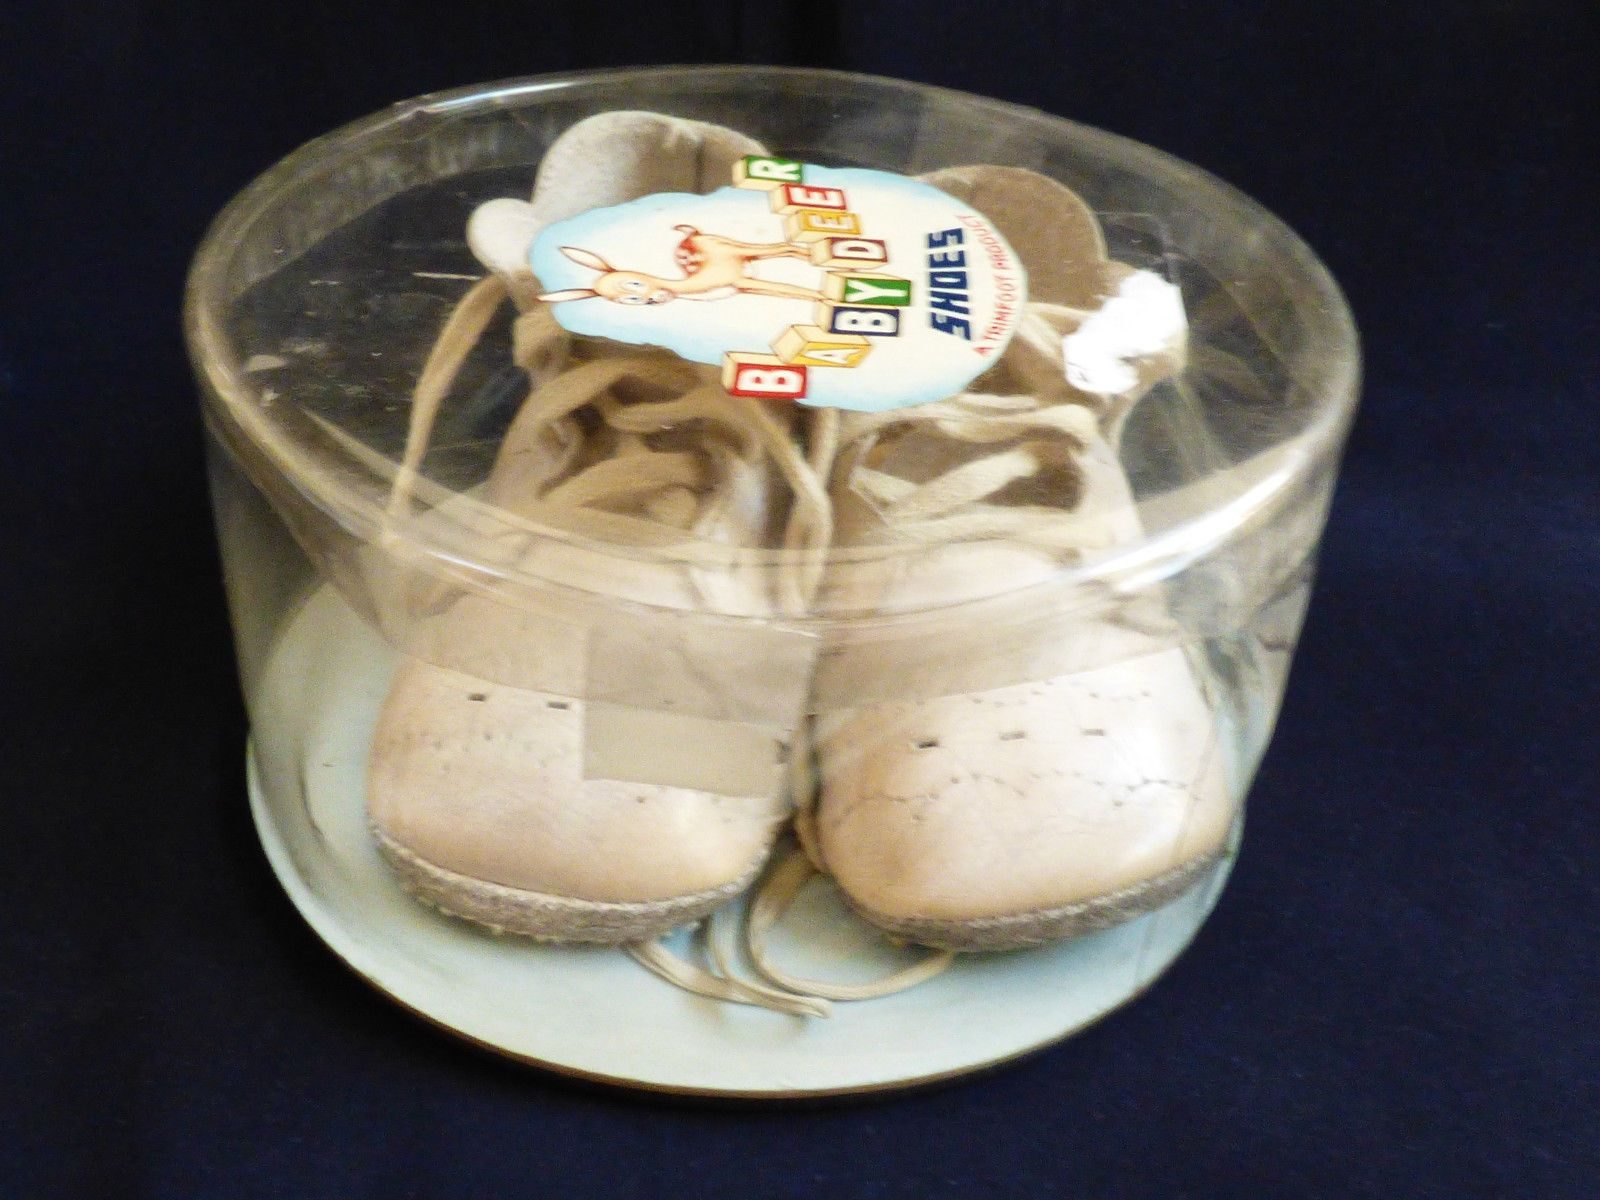 VTG Baby Deer Shoes w laces White Leather with original box by